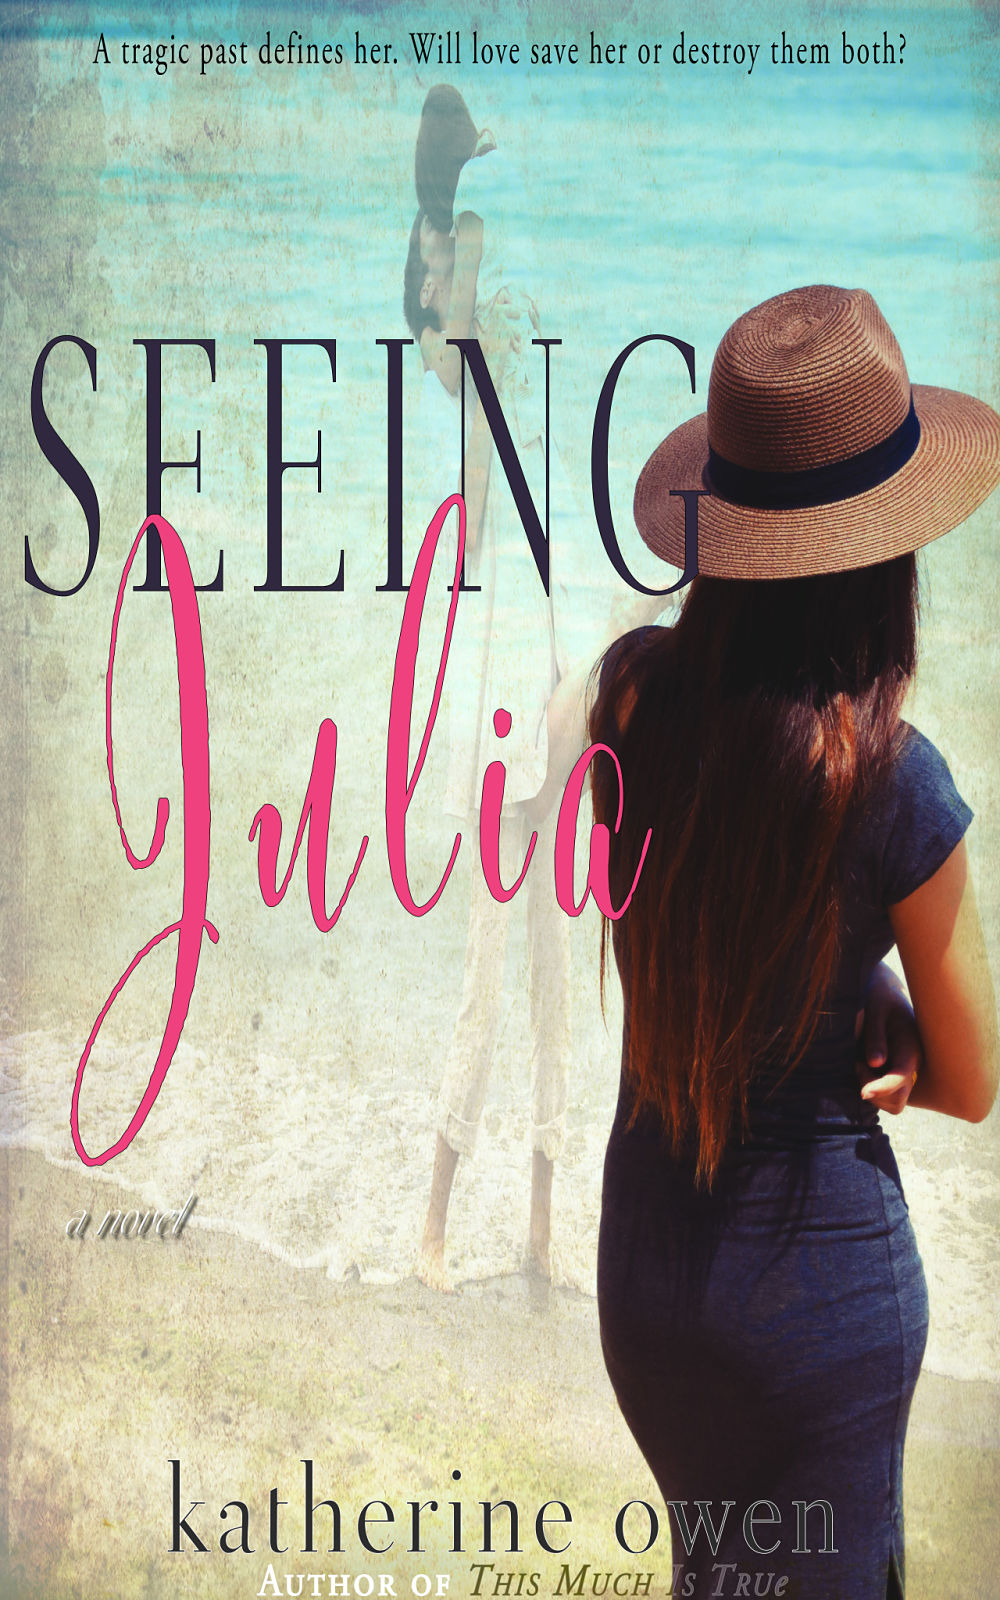 An updated ebook cover for the novel – Seeing Julia